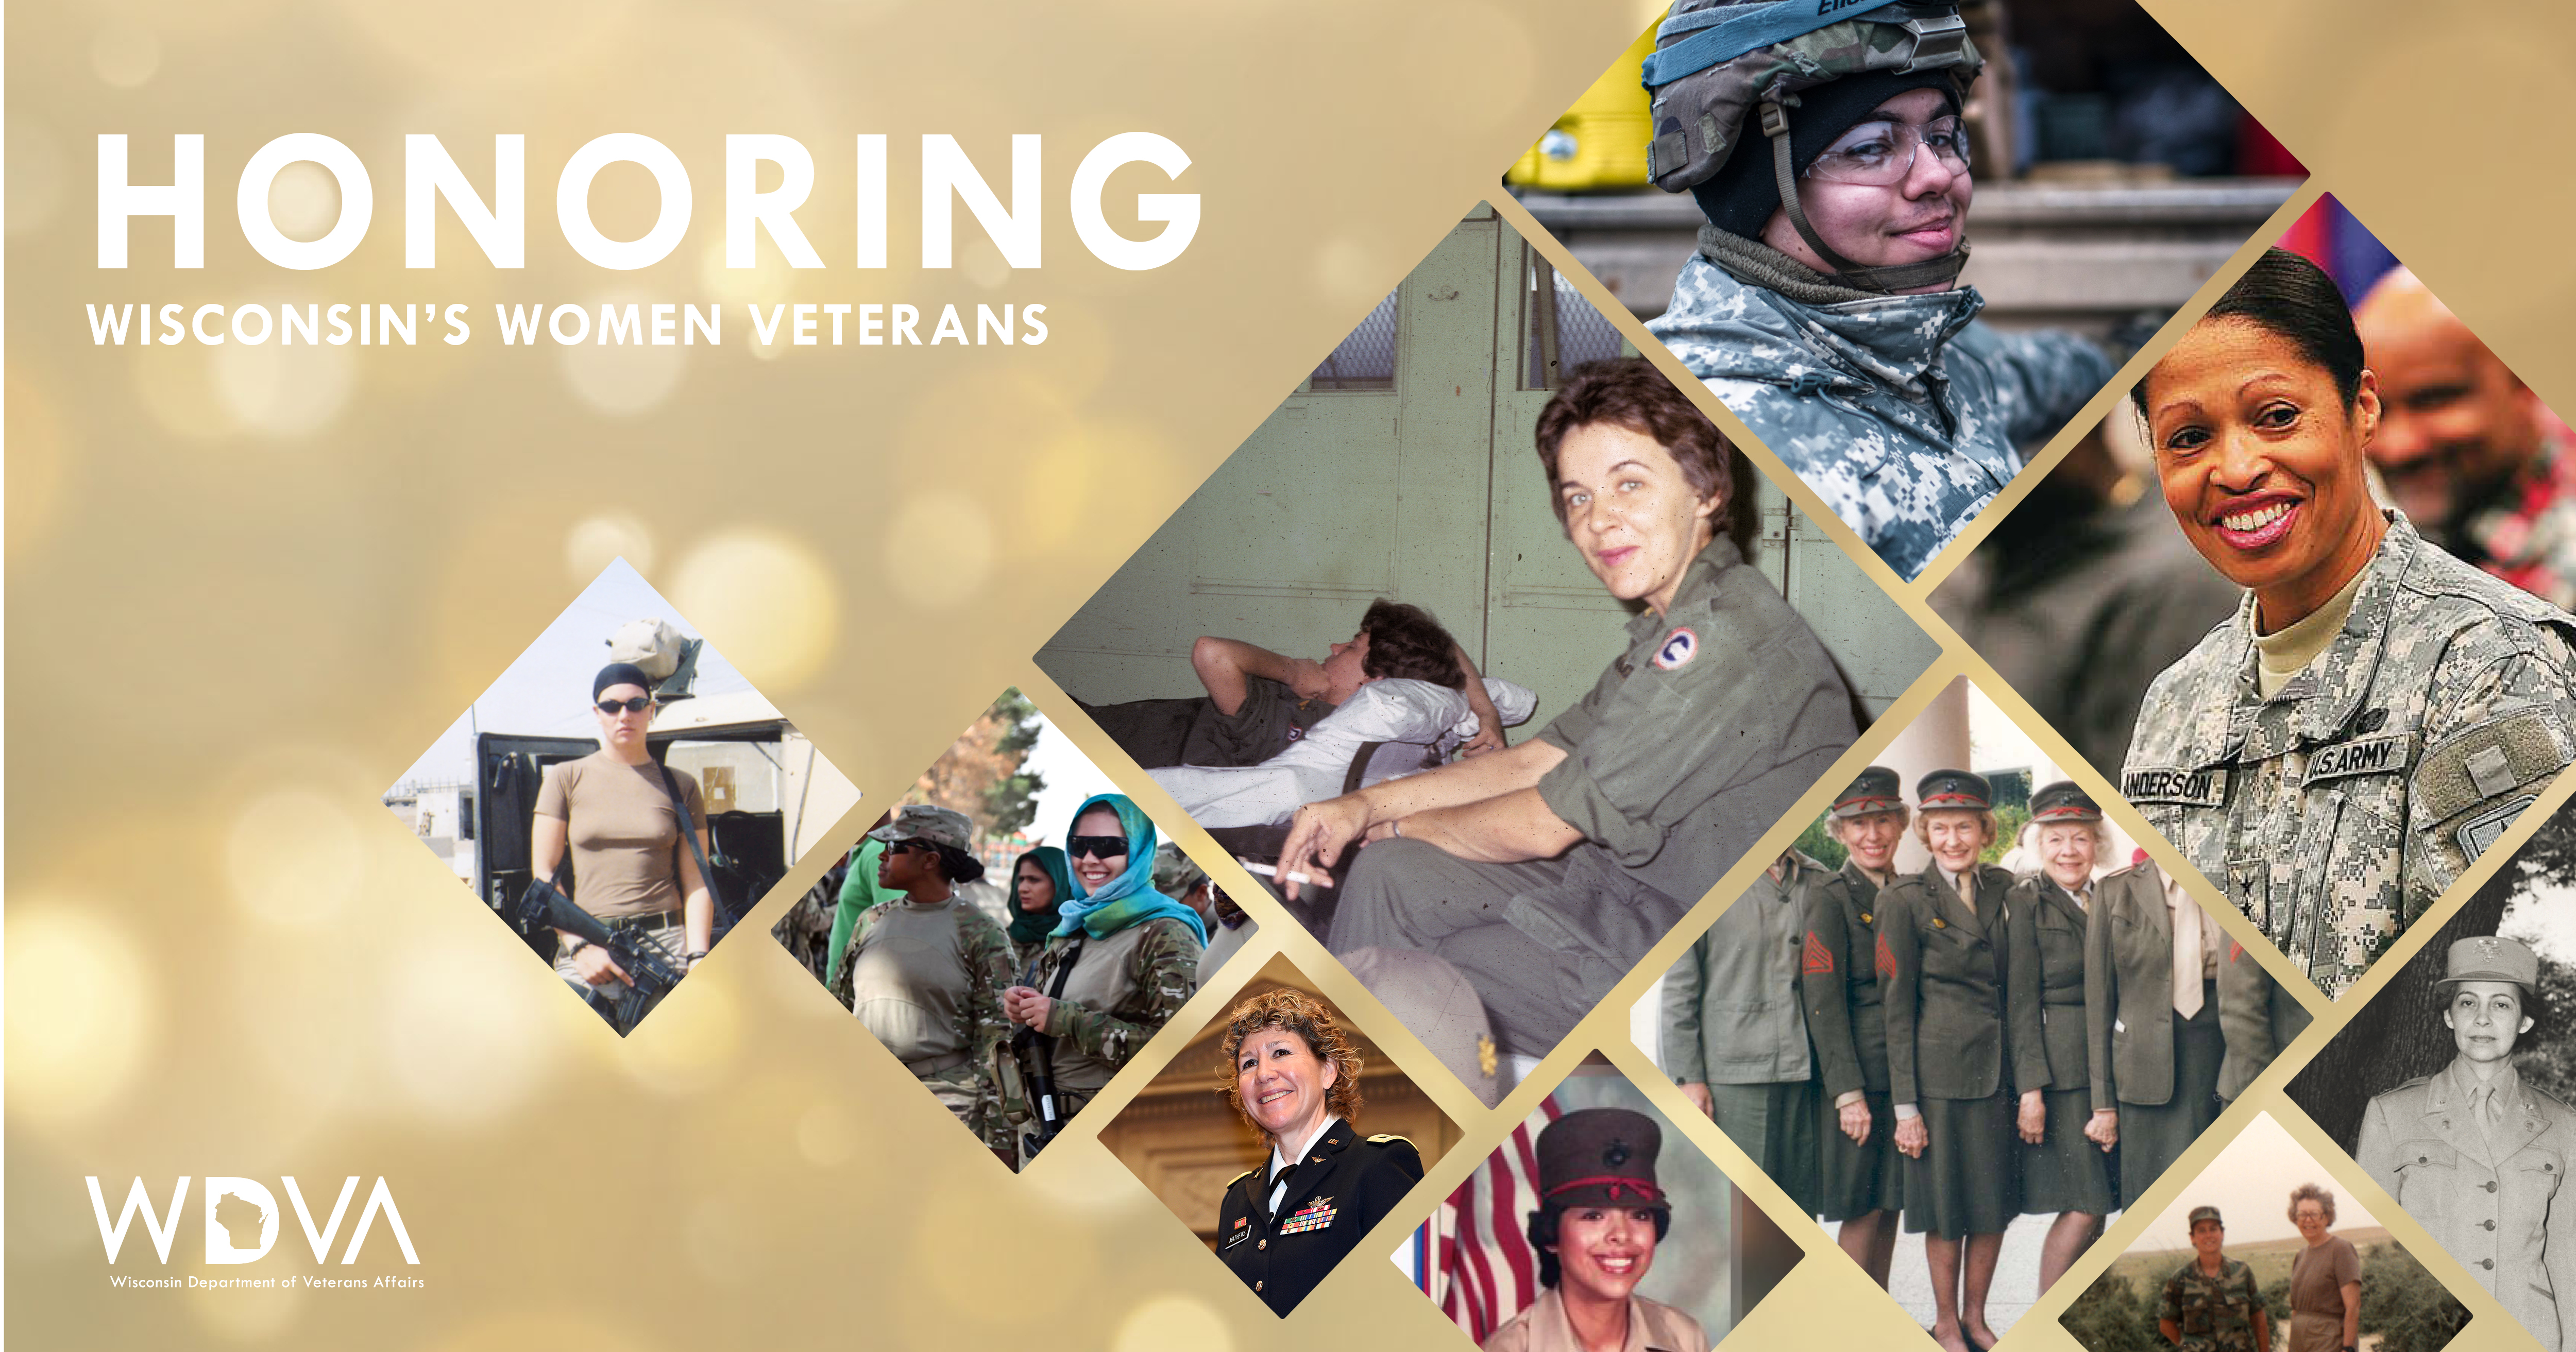 Woman Veterans Day Graphic.jpg